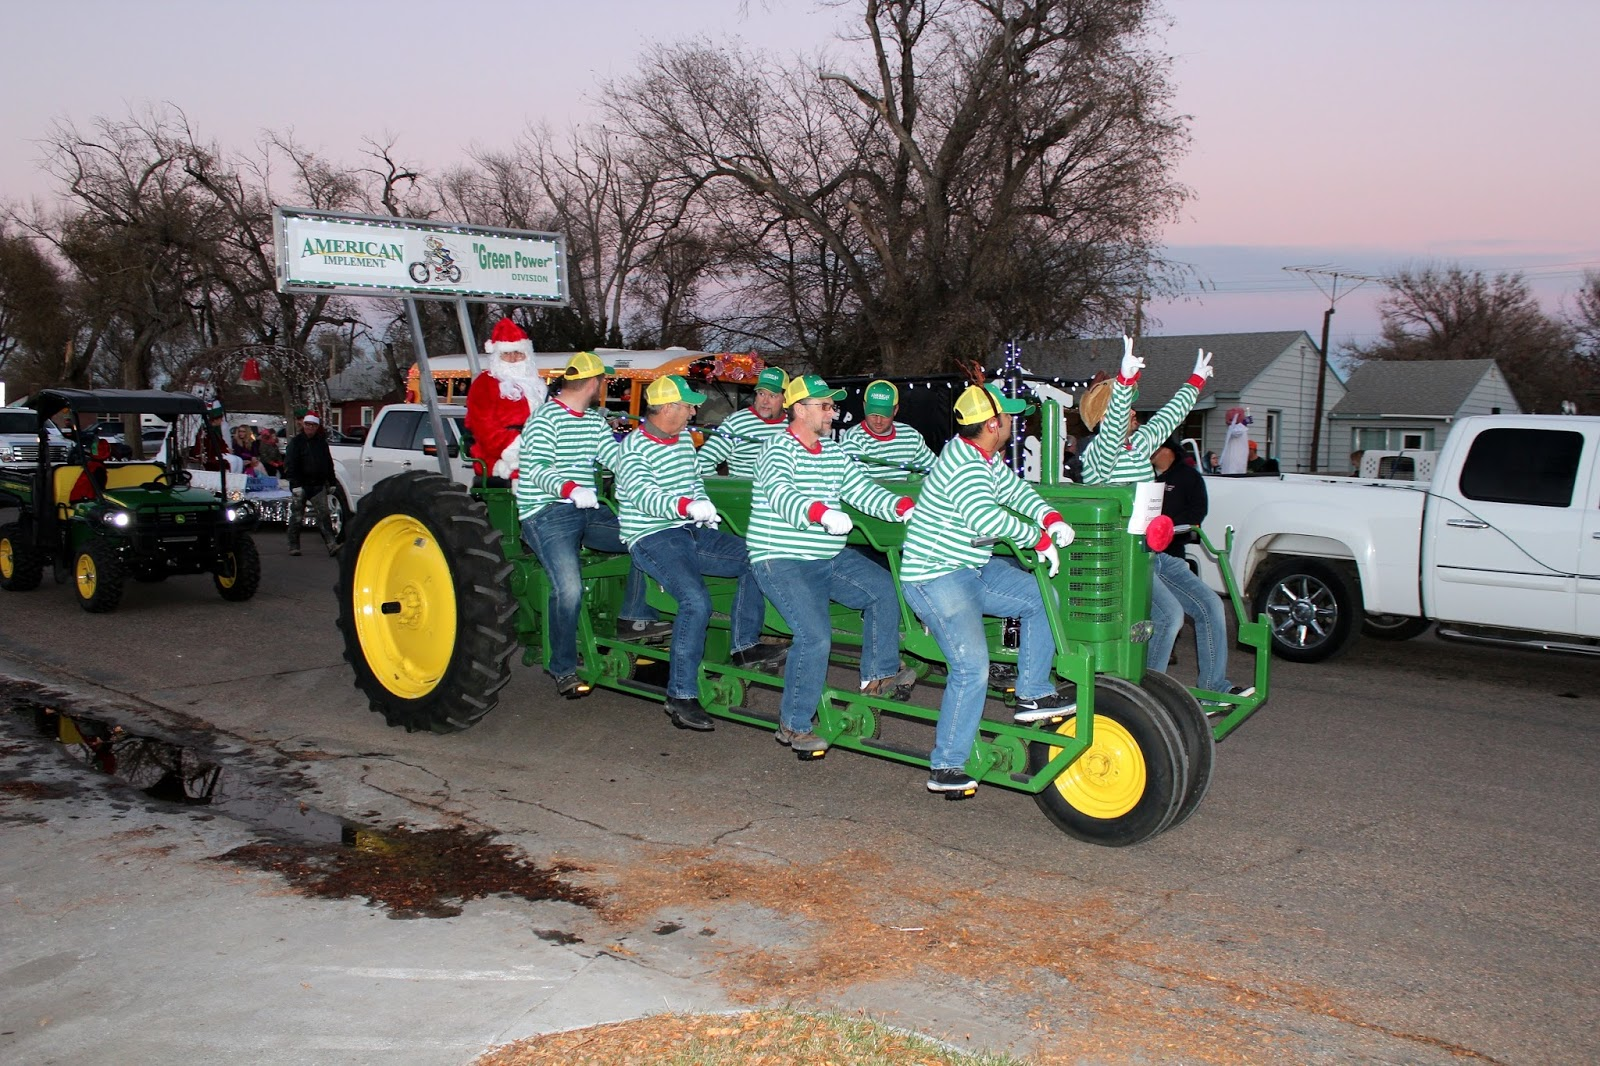 John Deere Model B Pedal Tractor It Was A Hit We Didnt Want To Put Lights On The Machine And Opted Place More